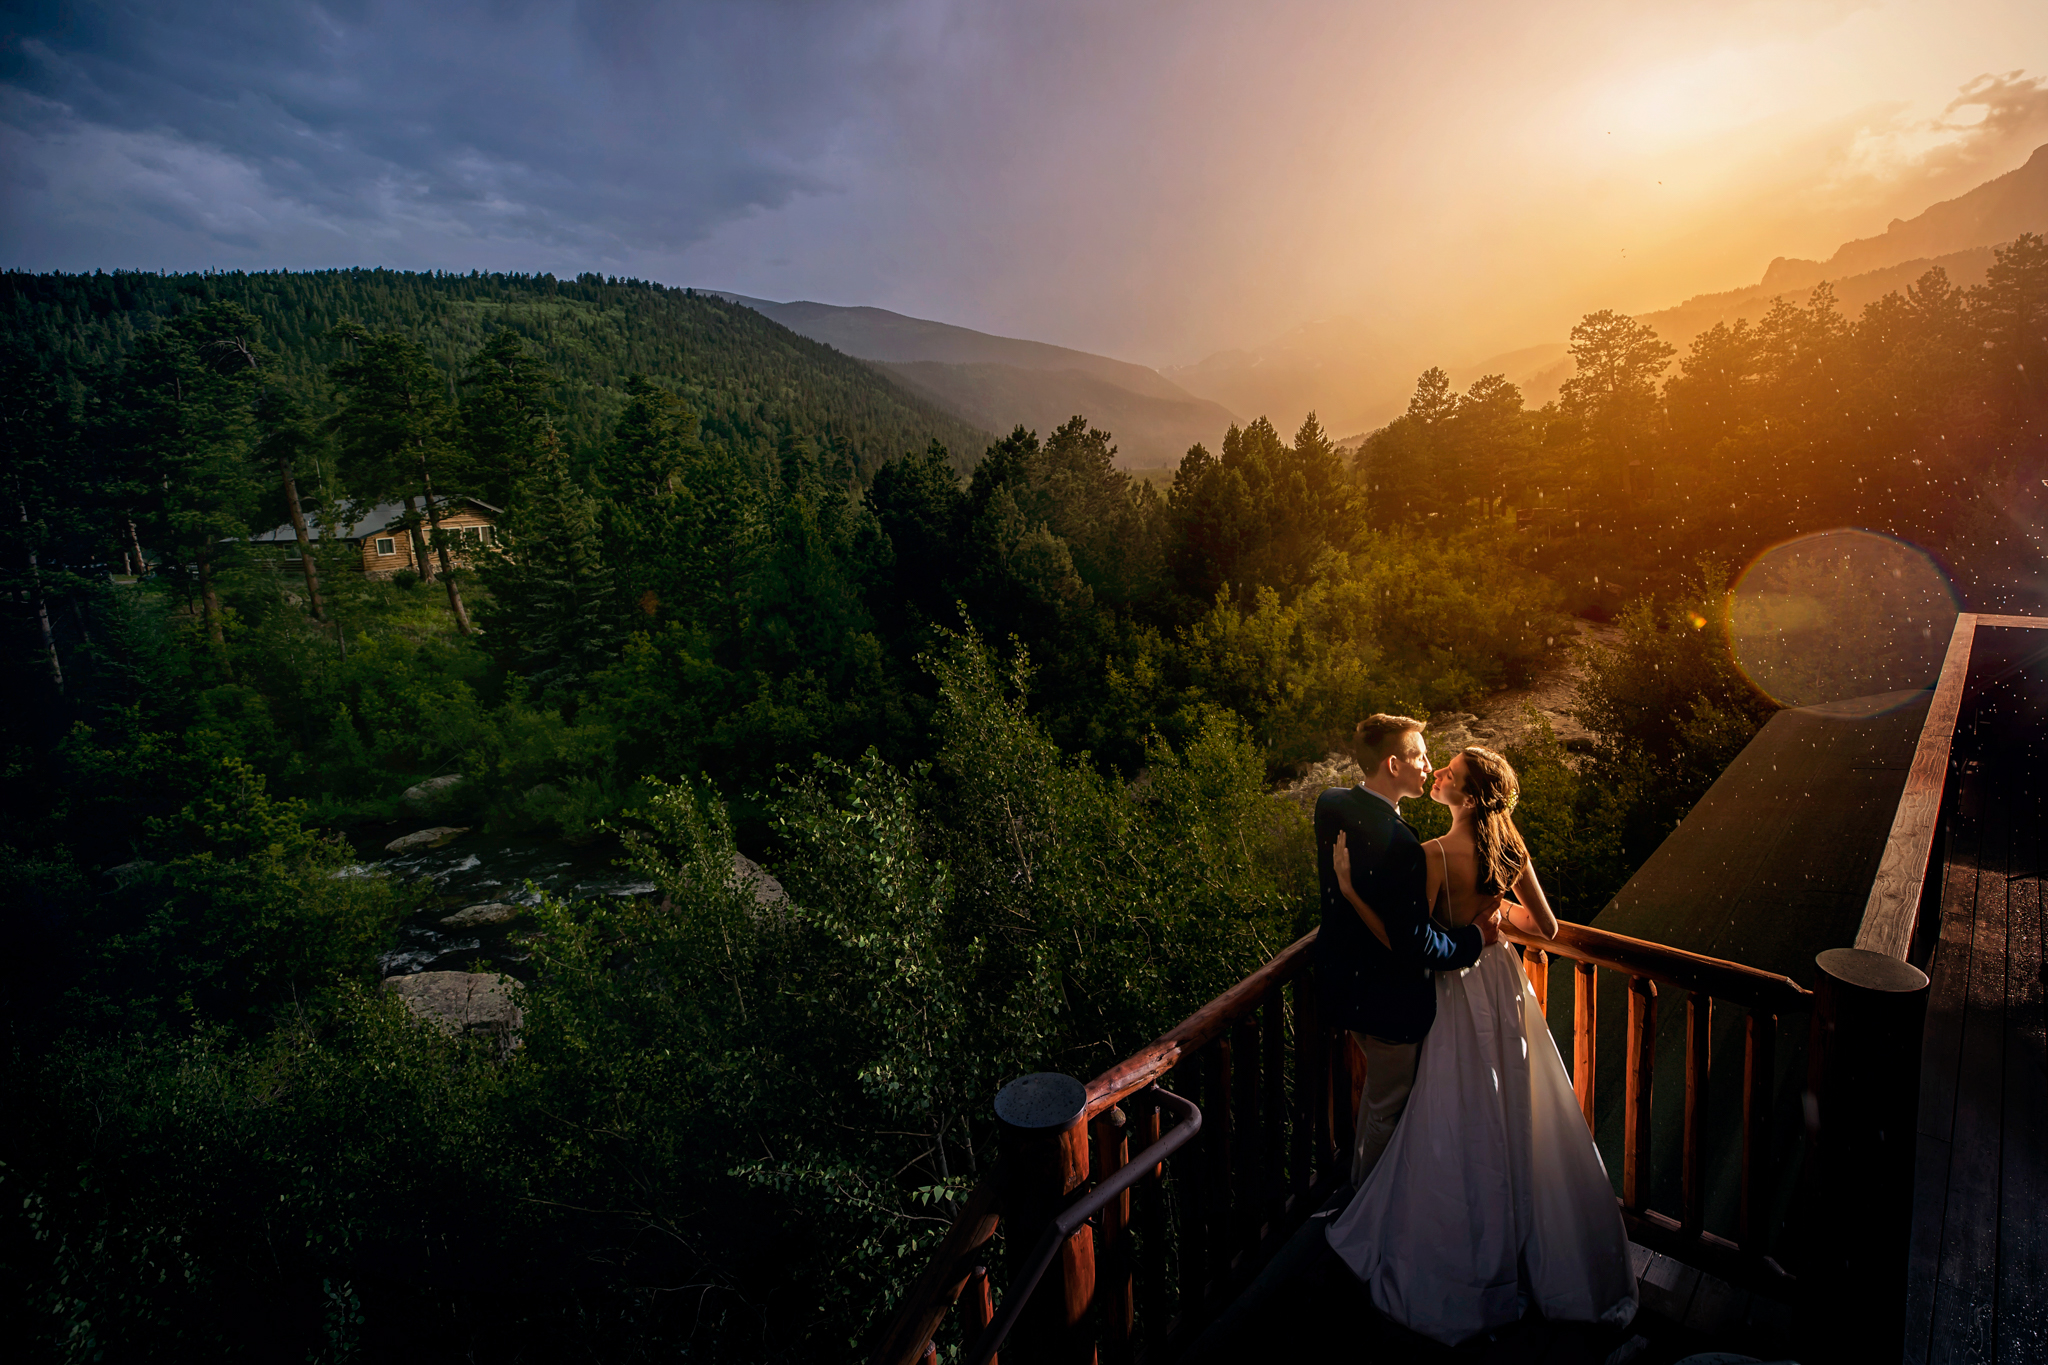 romantic bride and groom portrait in the sunlit mountains- photo by Chrisman Studios